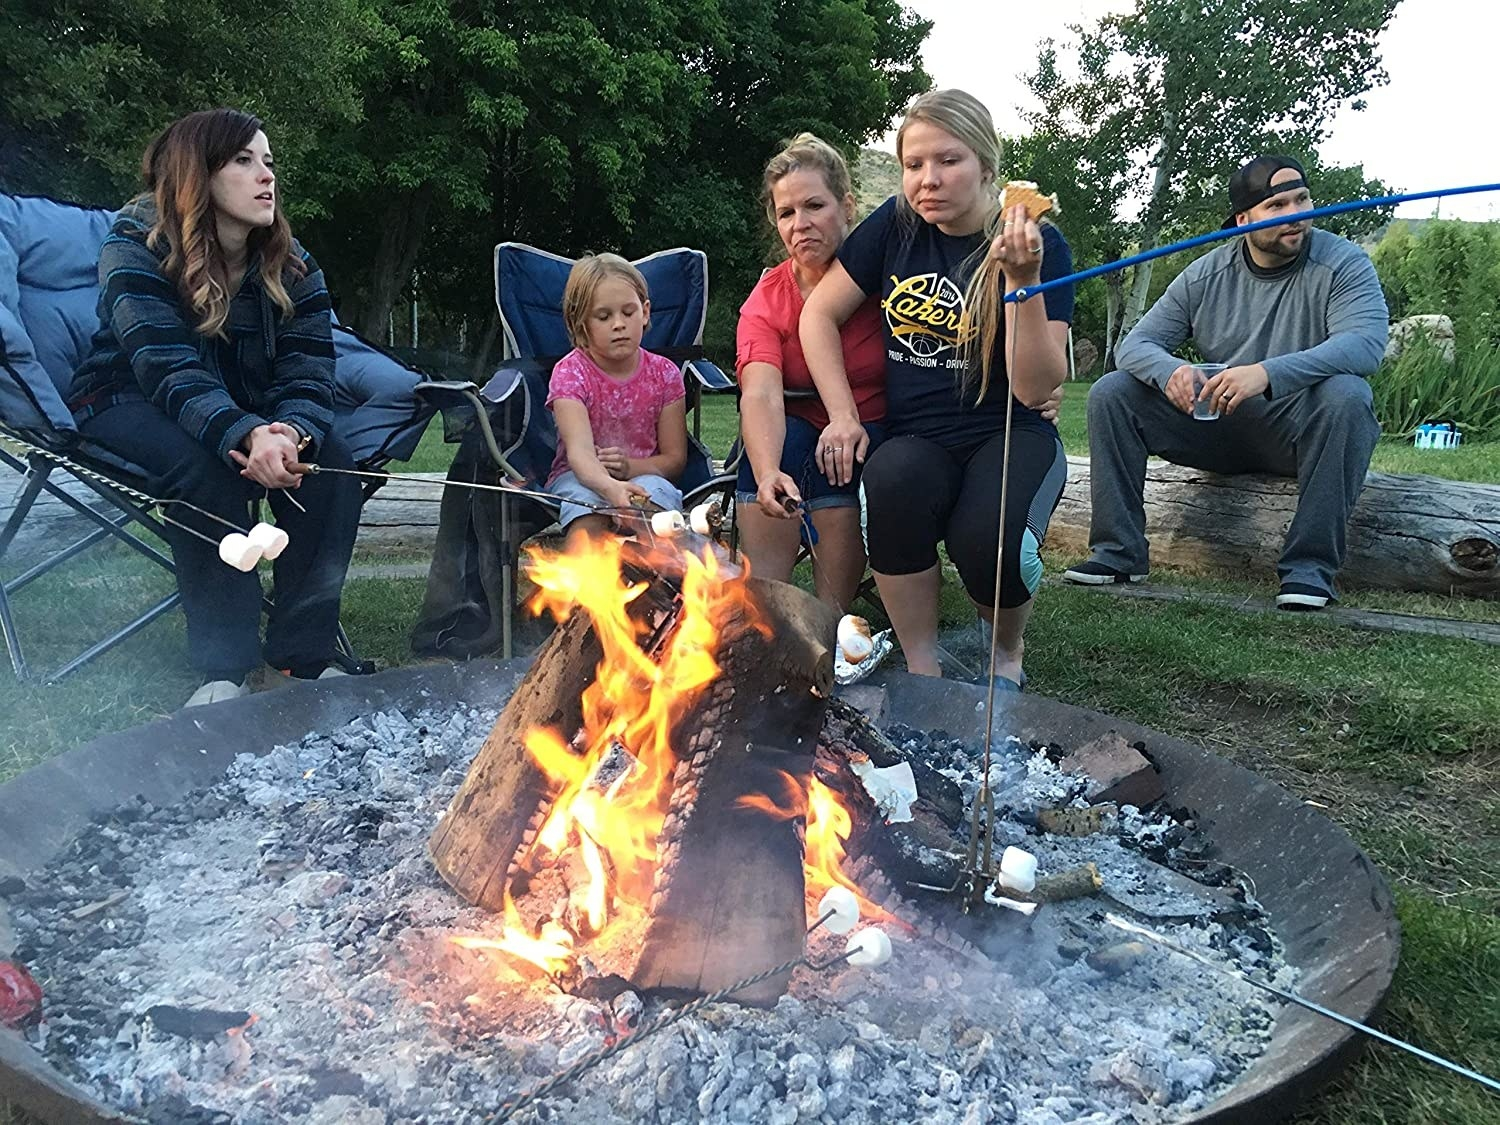 Five people sitting in front of a fire pit roasting marshmallows